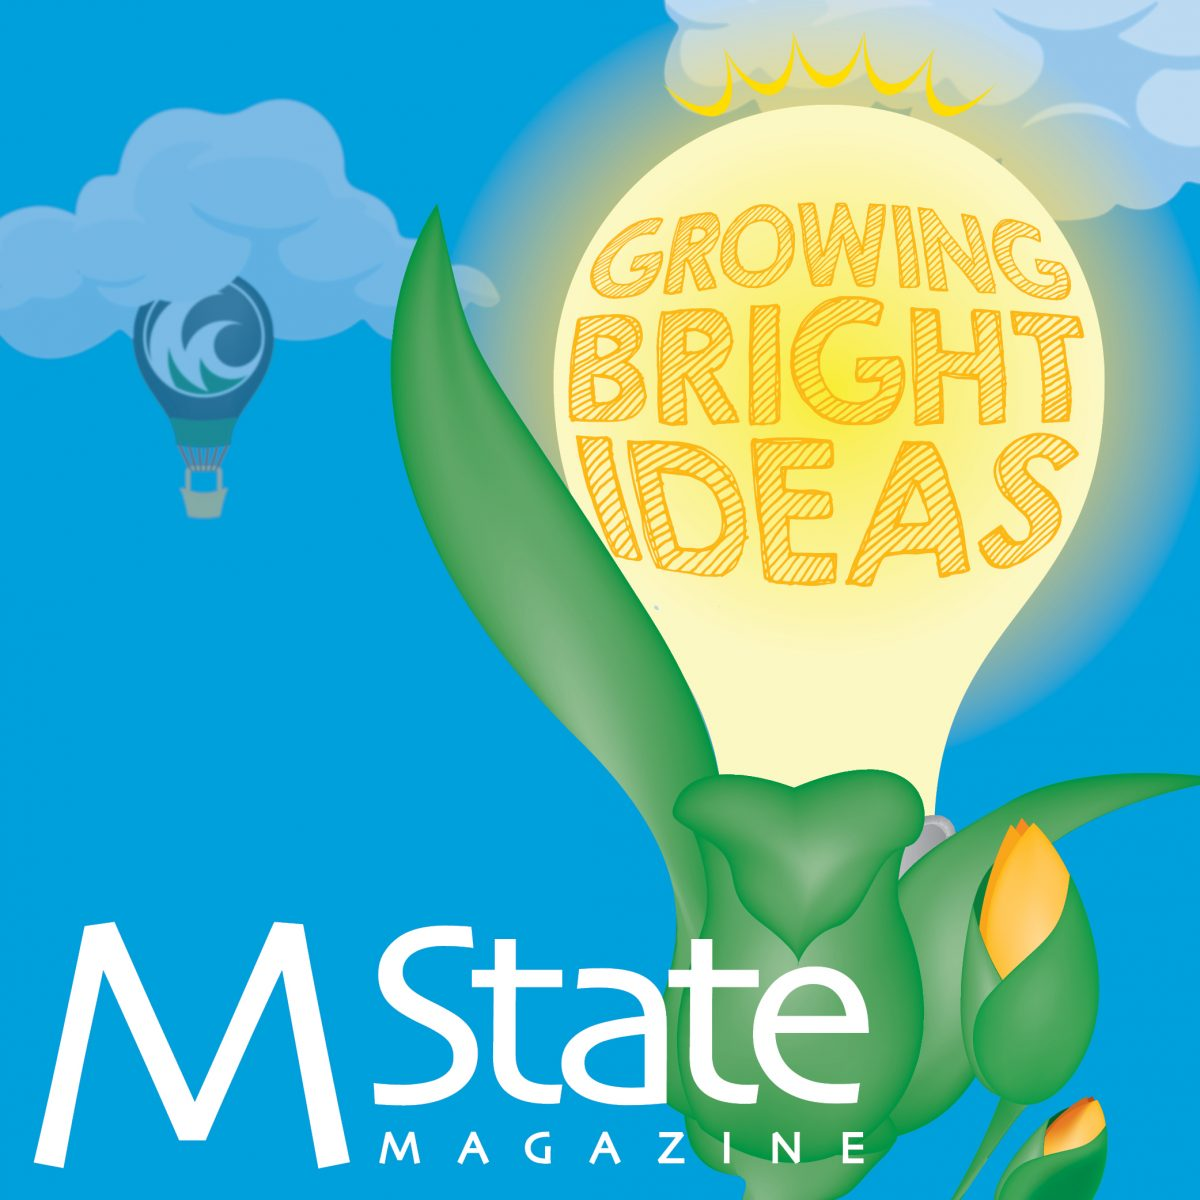 Check out the M State Magazine Spring 2018